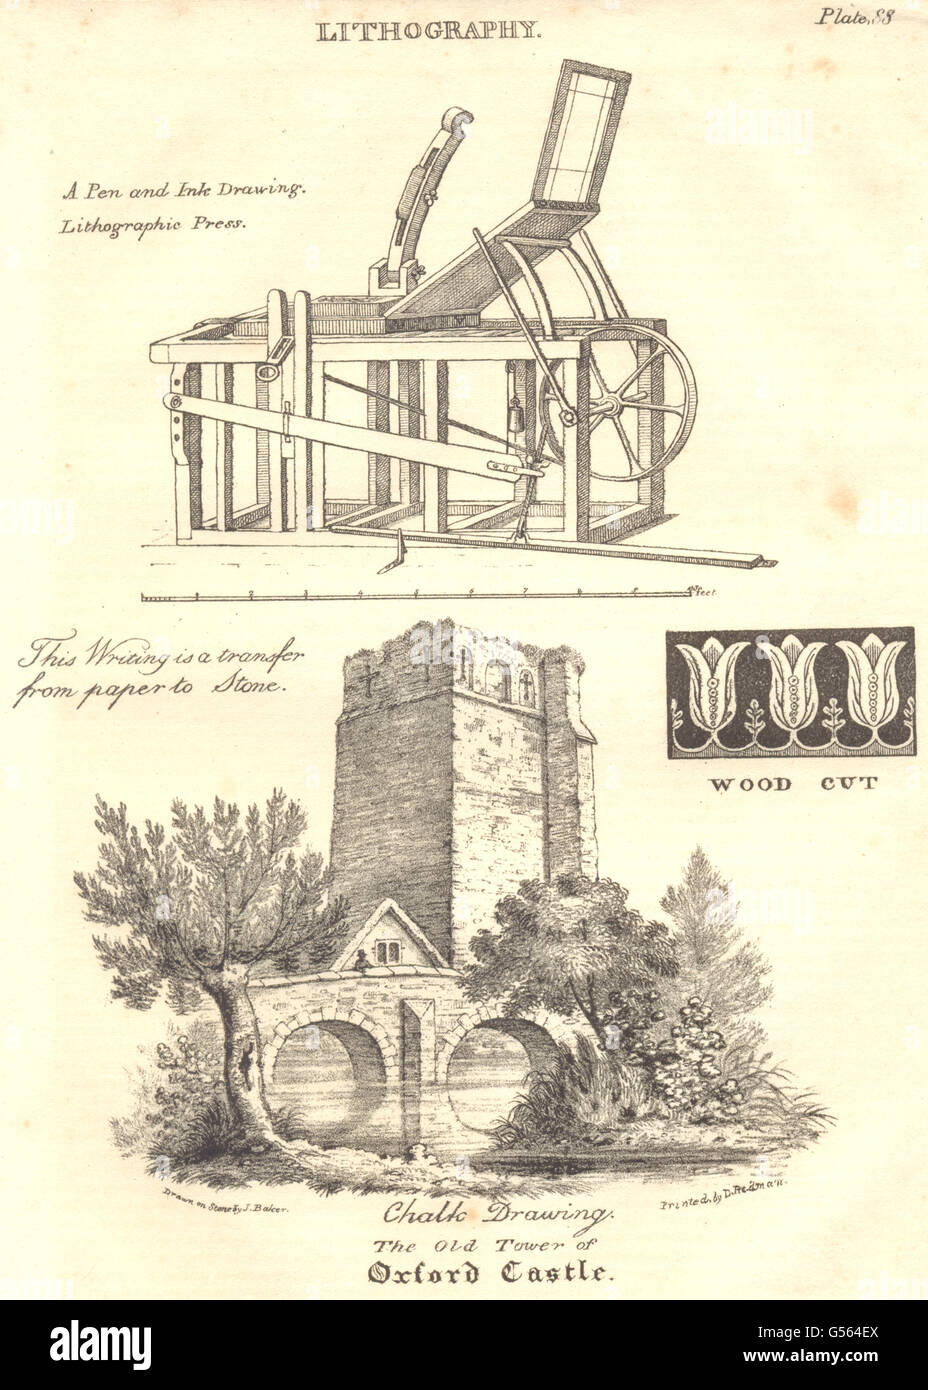 OXFORD: Lithography; Lithographic Press; The old tower of Oxford Castle, 1830 - Stock Image